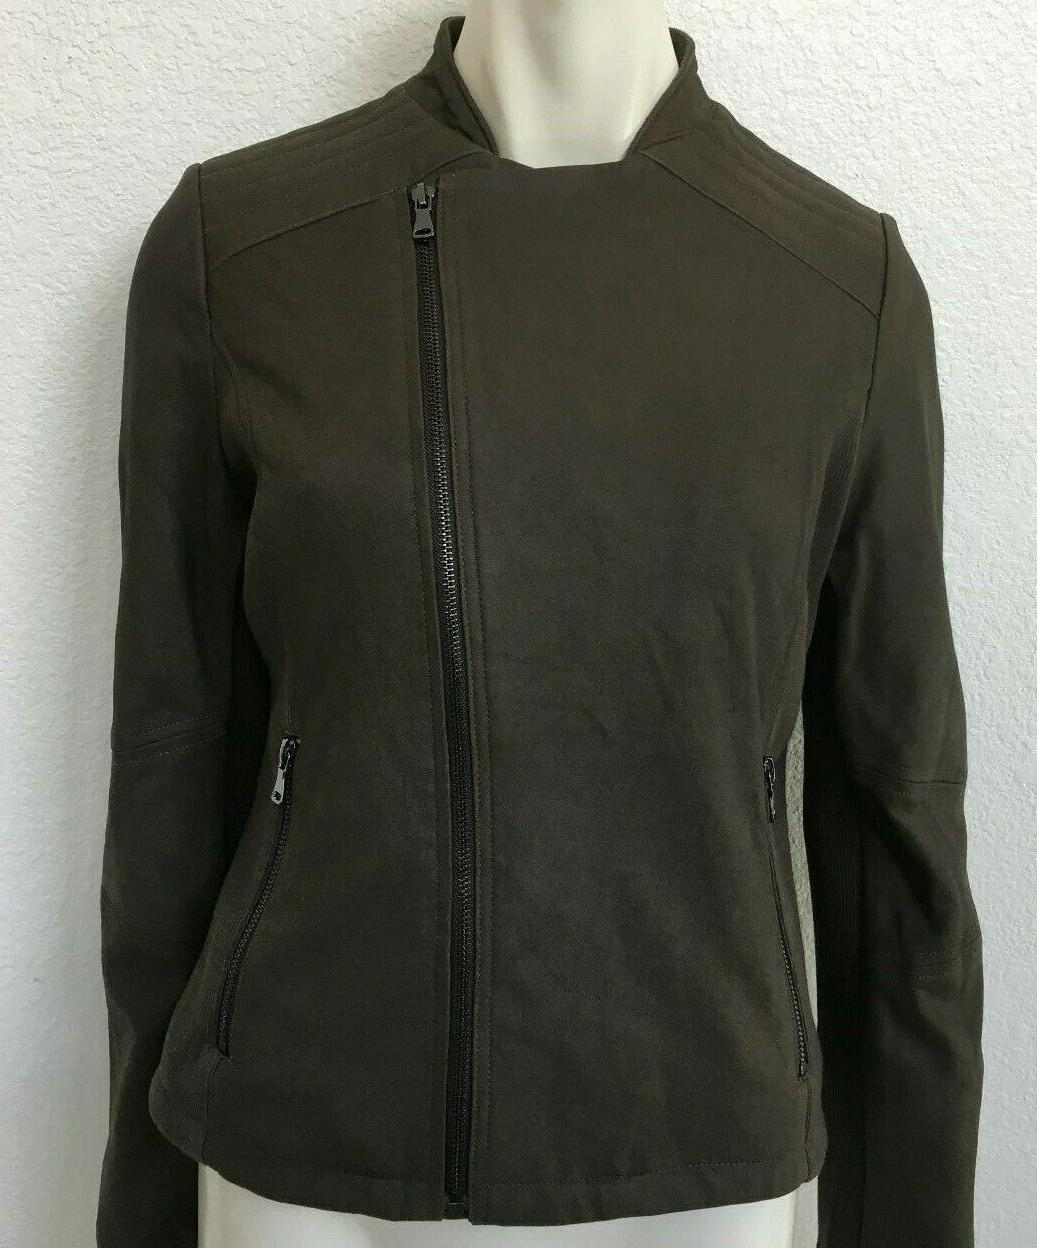 Women's Leather Zipper Taupe NWOT by Lark Ro